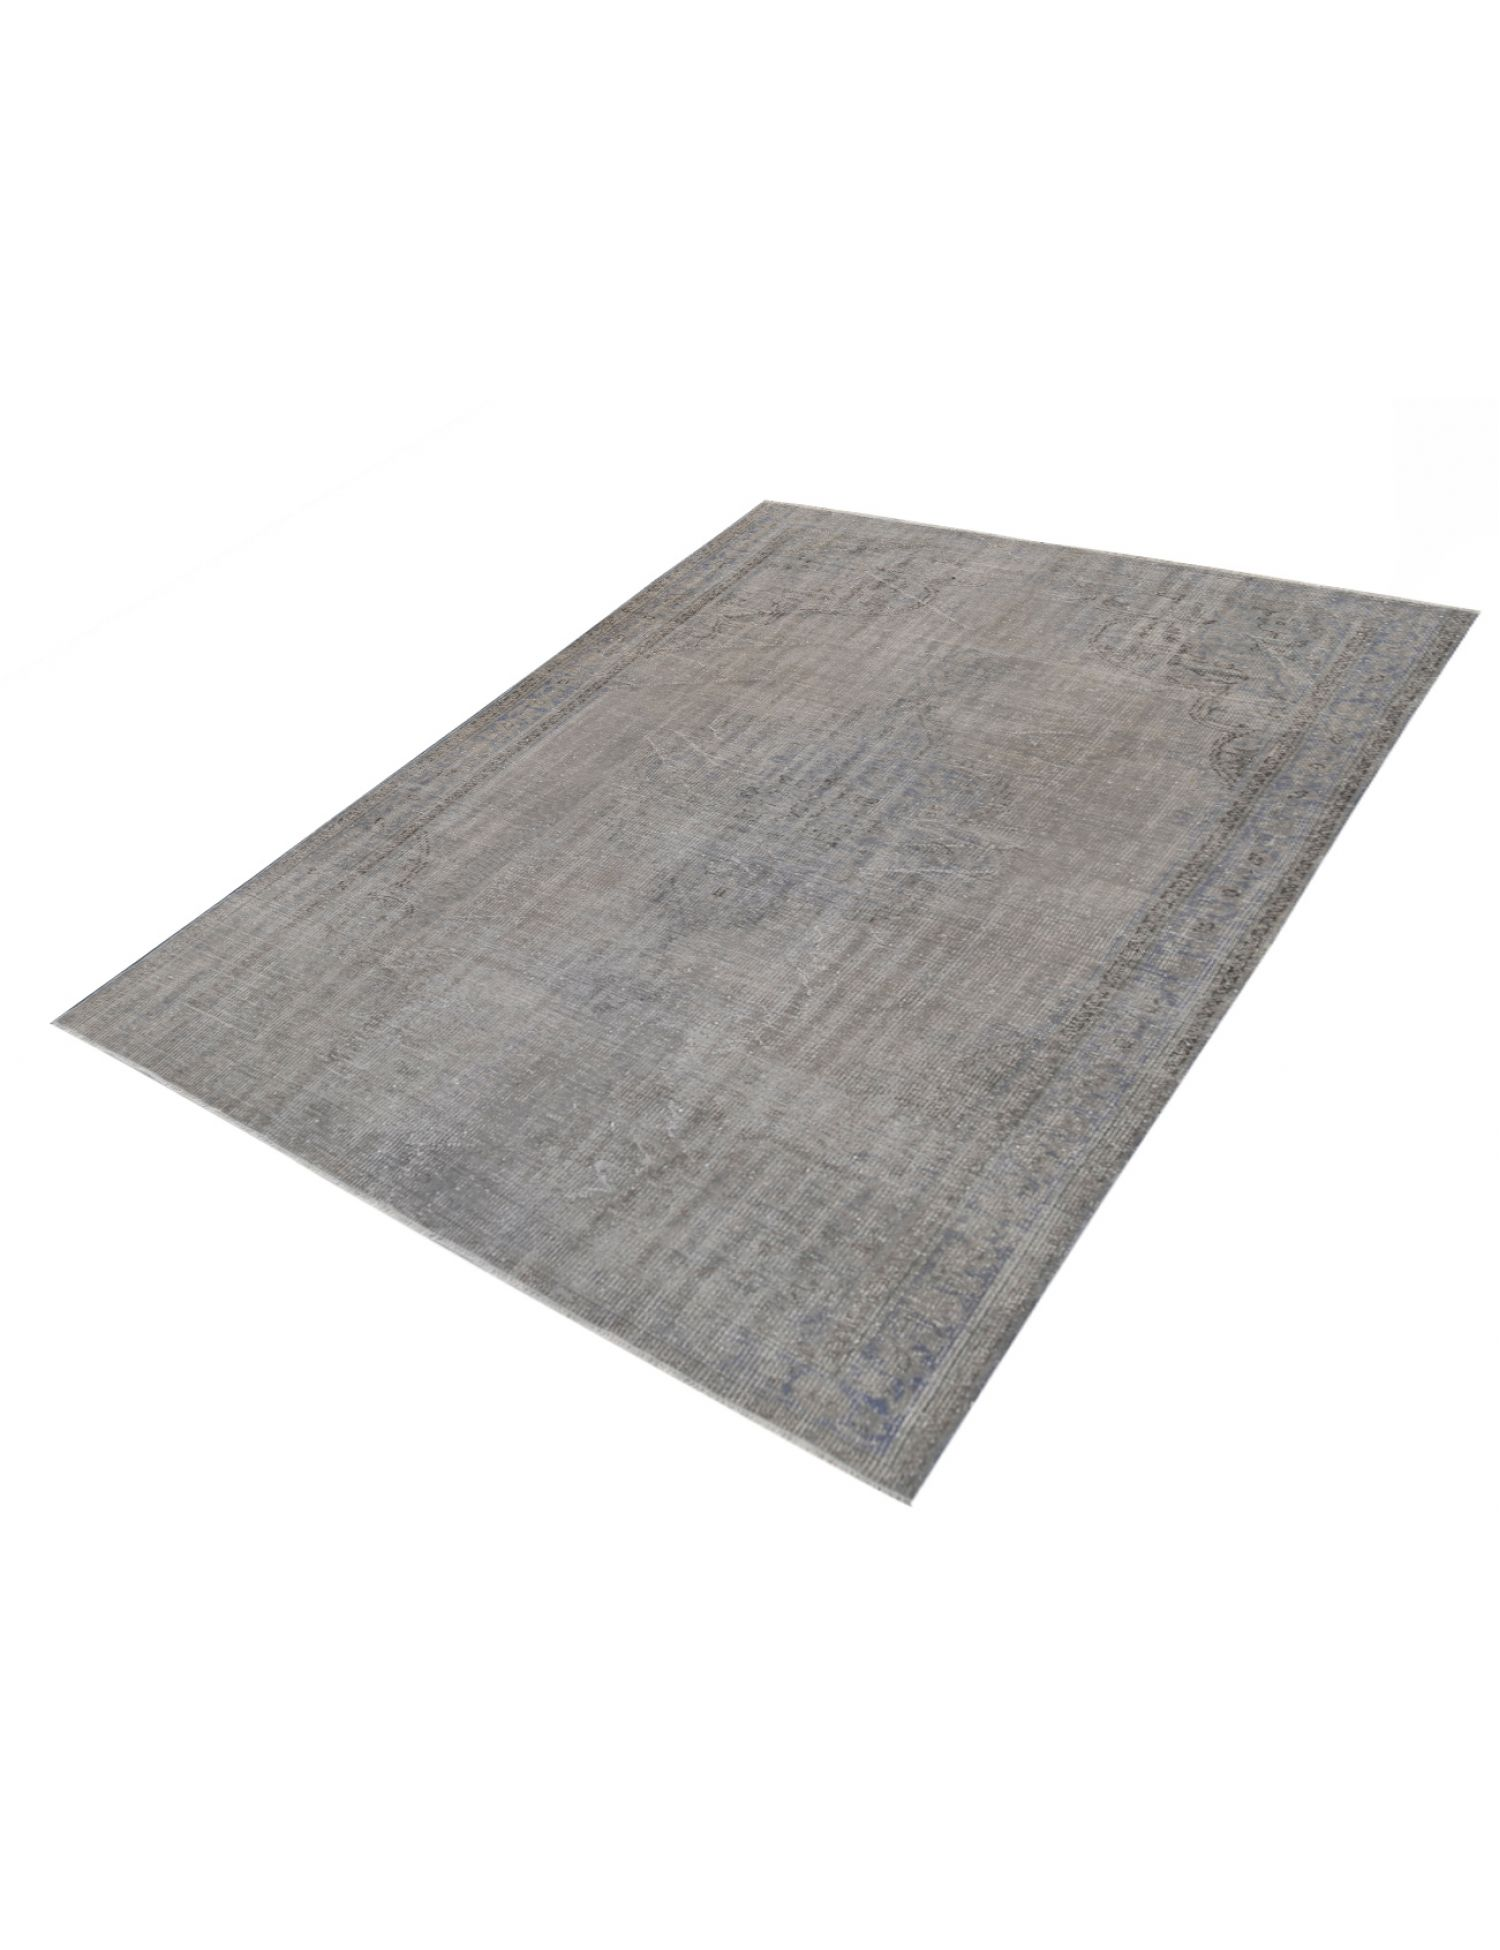 Vintage Carpet  grey <br/>277 x 194 cm